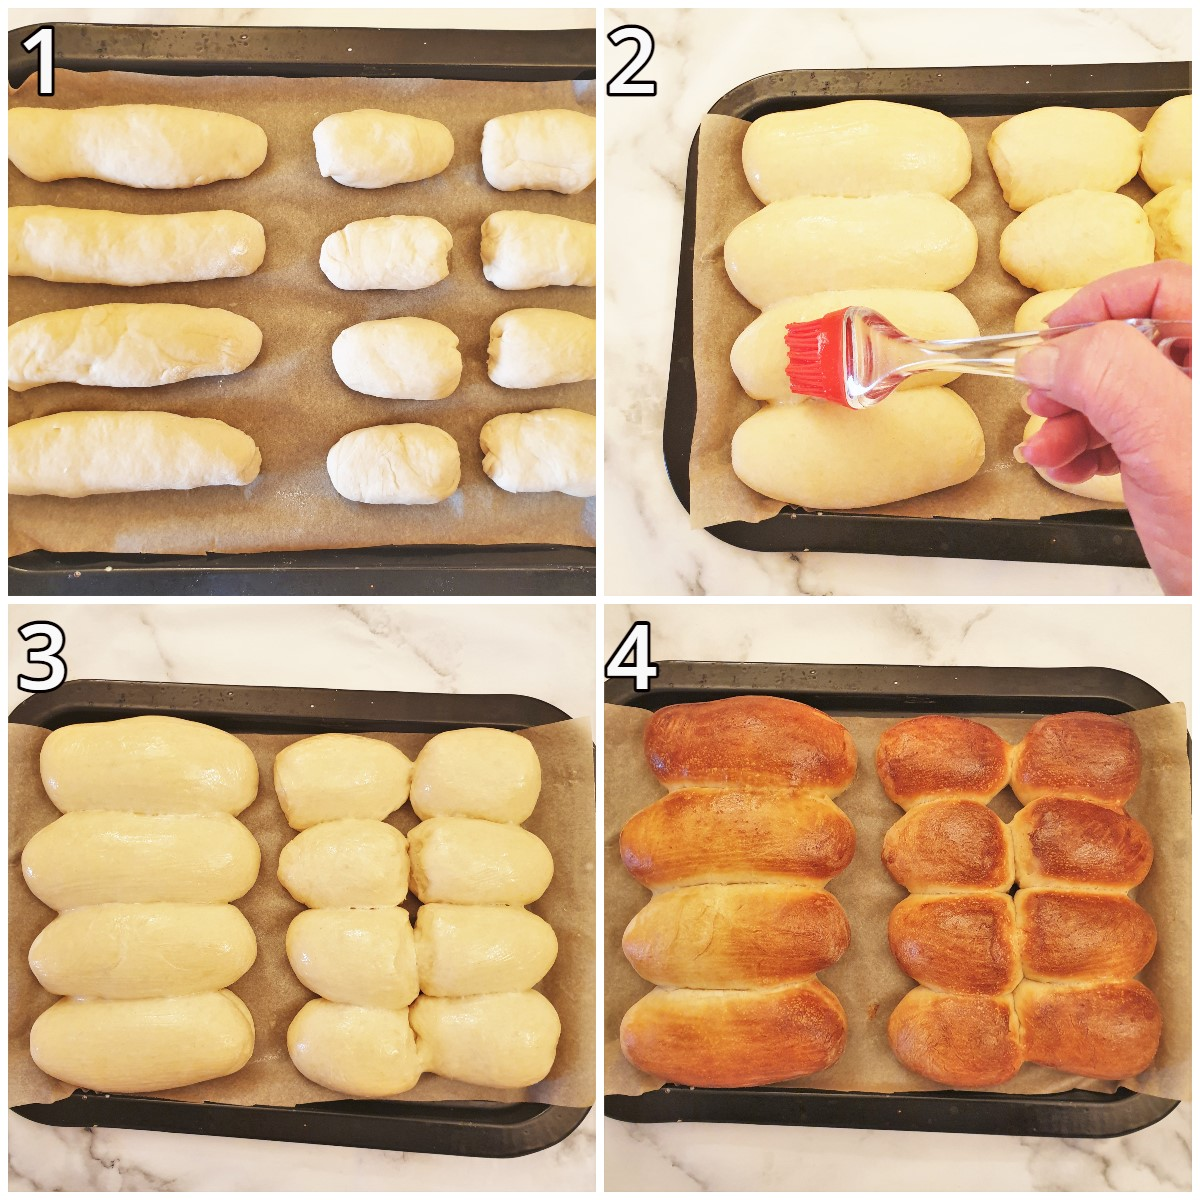 Steps for baking the rolls.